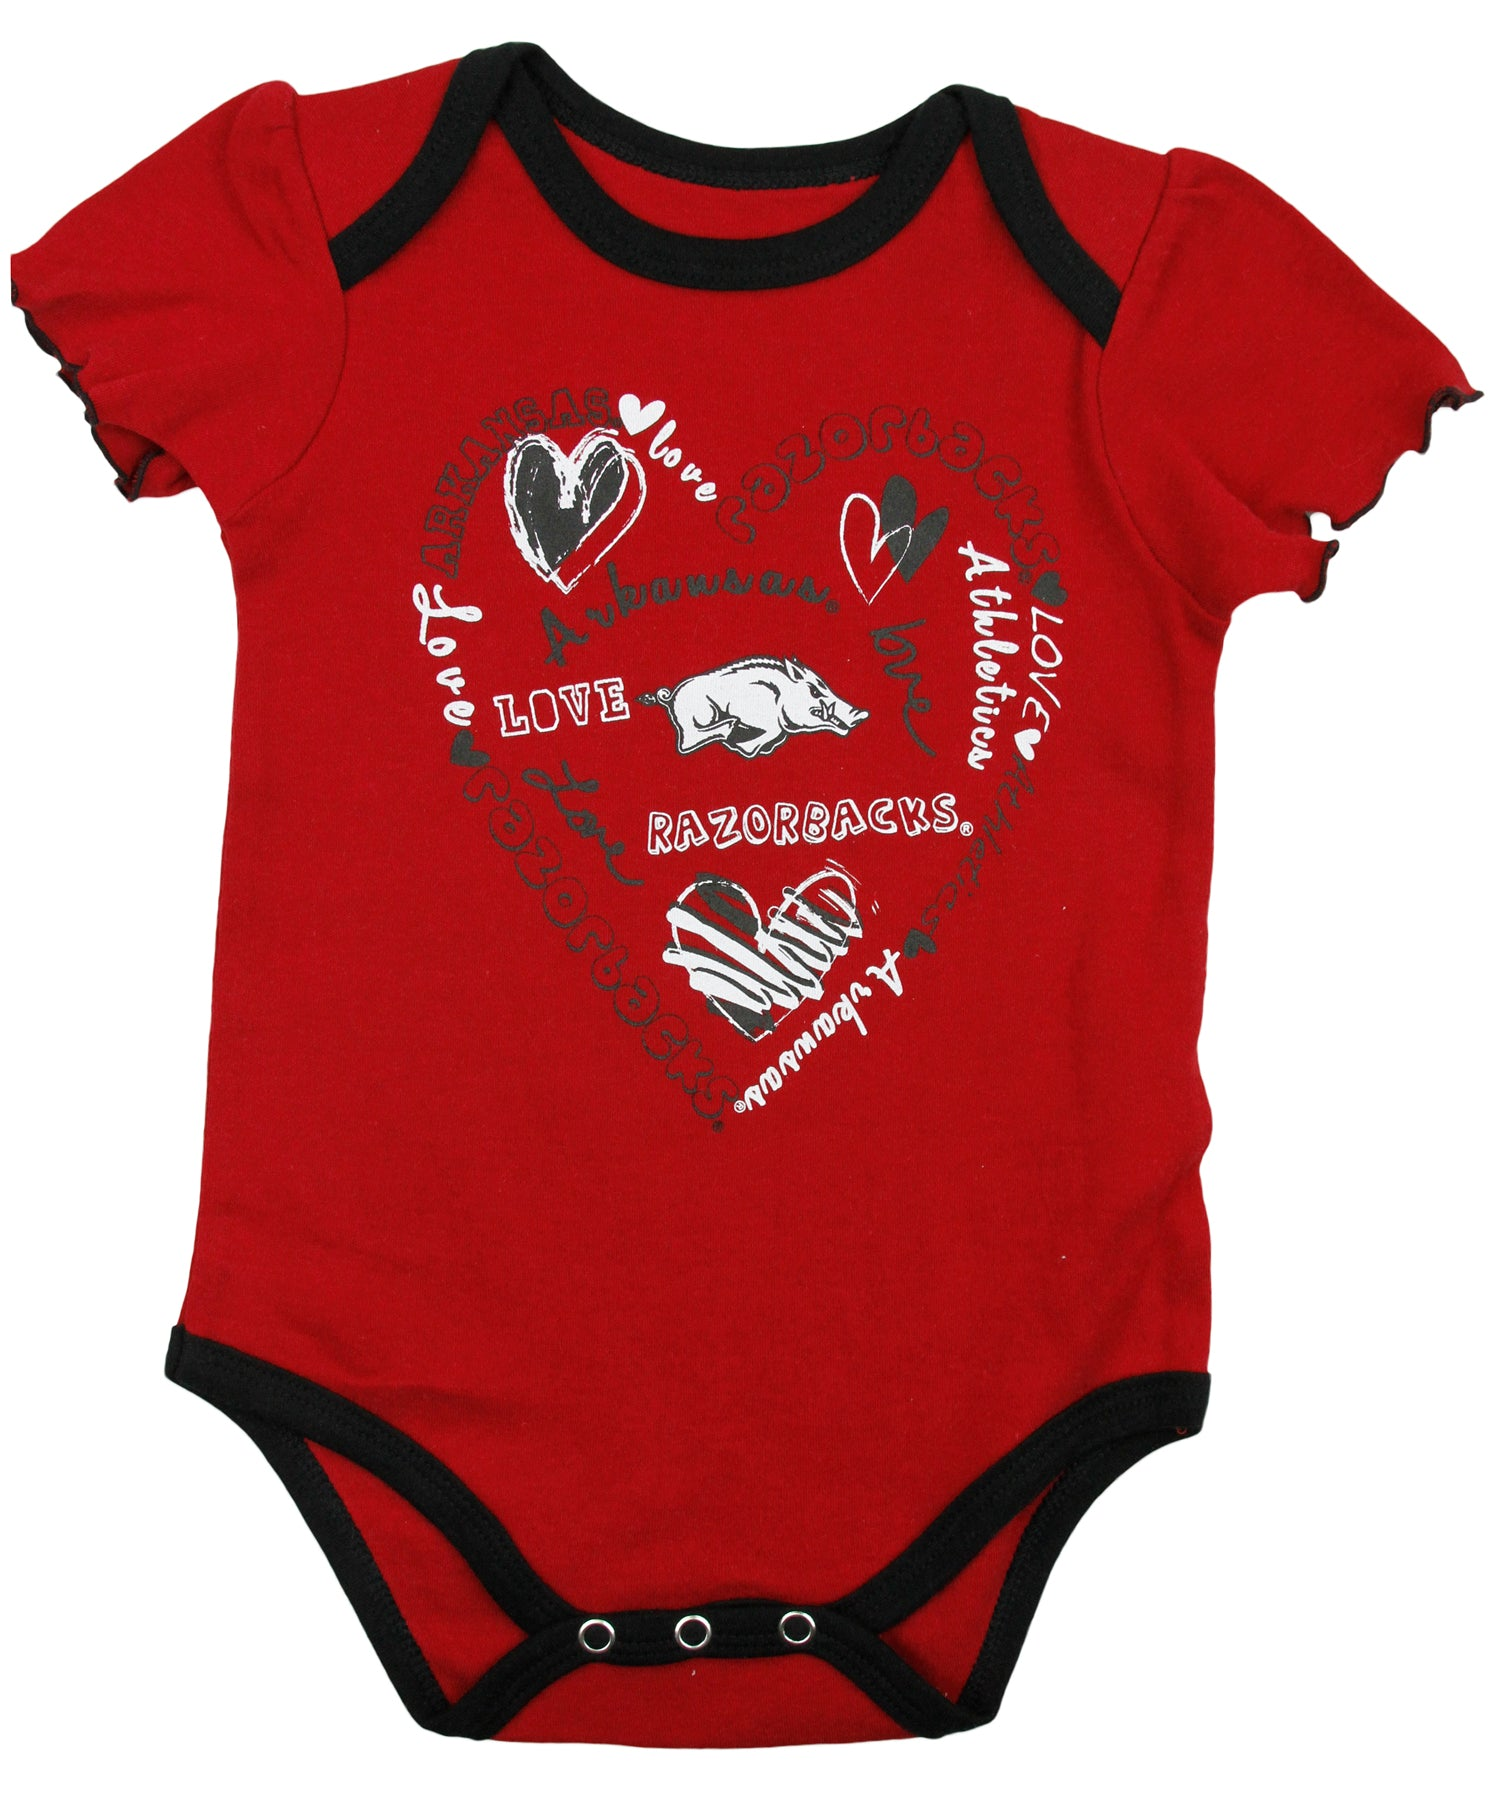 NFL TEAM APPAREL Chicago Bears Baby Girl Creeper Body Suit 0-3 3-6 18 Months